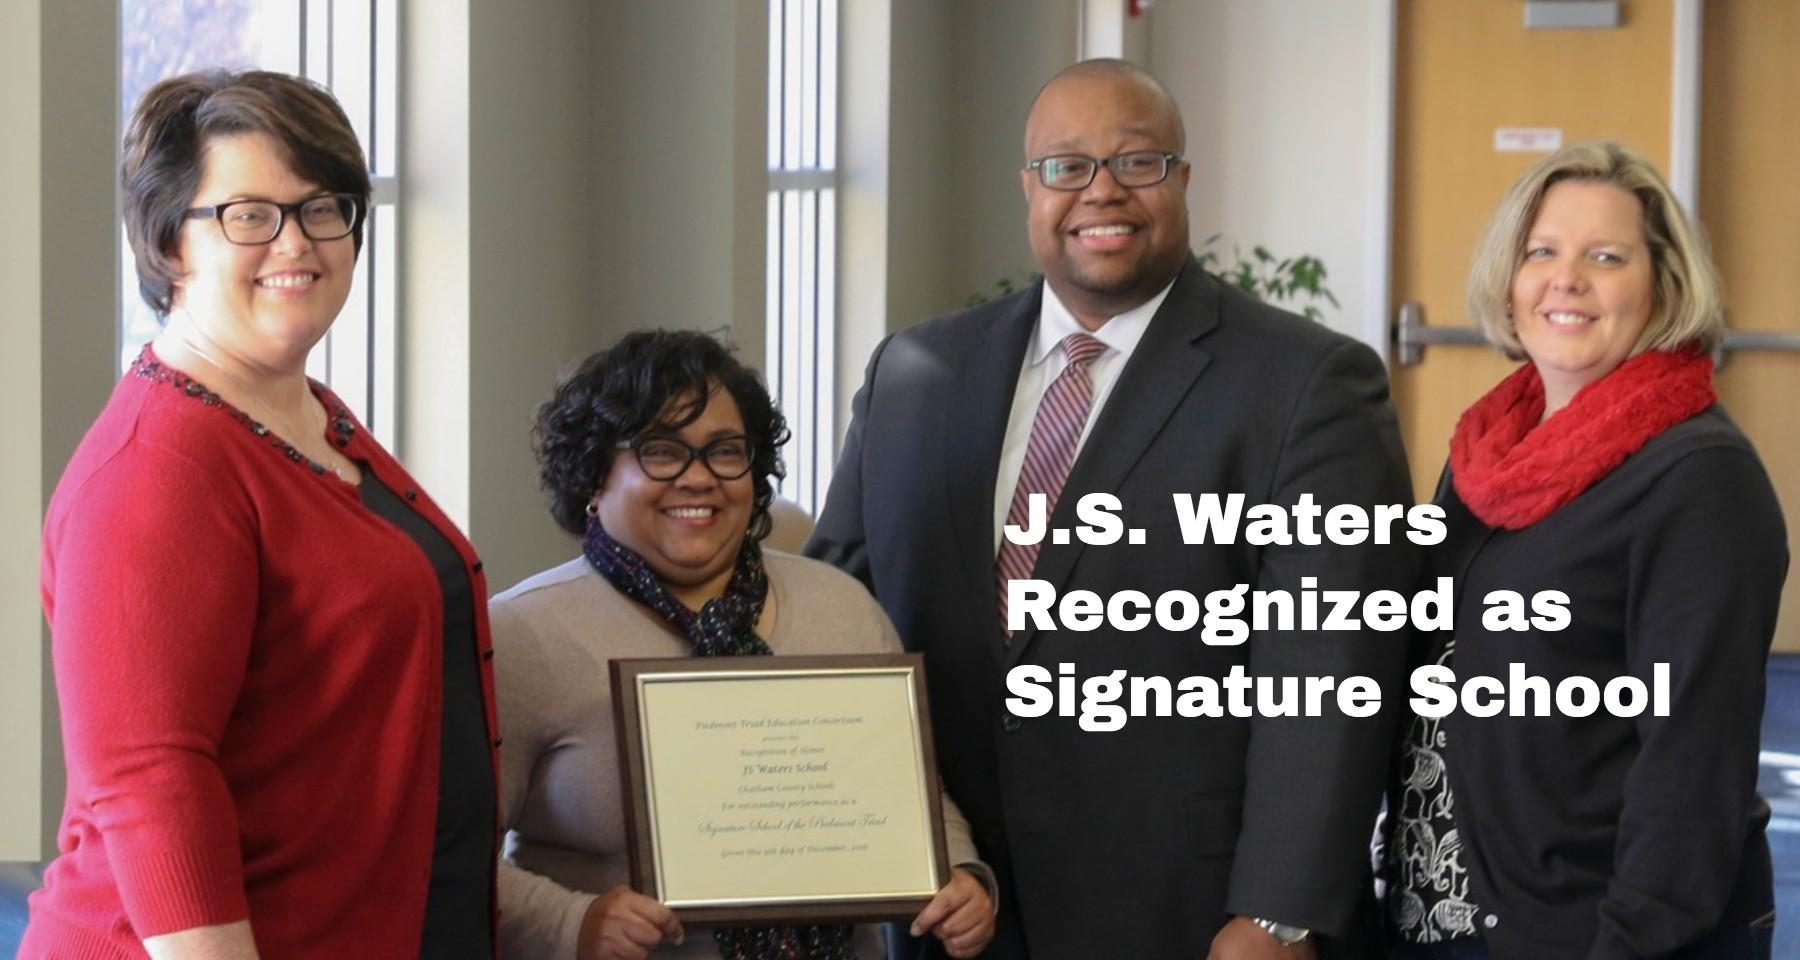 J.S. Waters Named Signature School